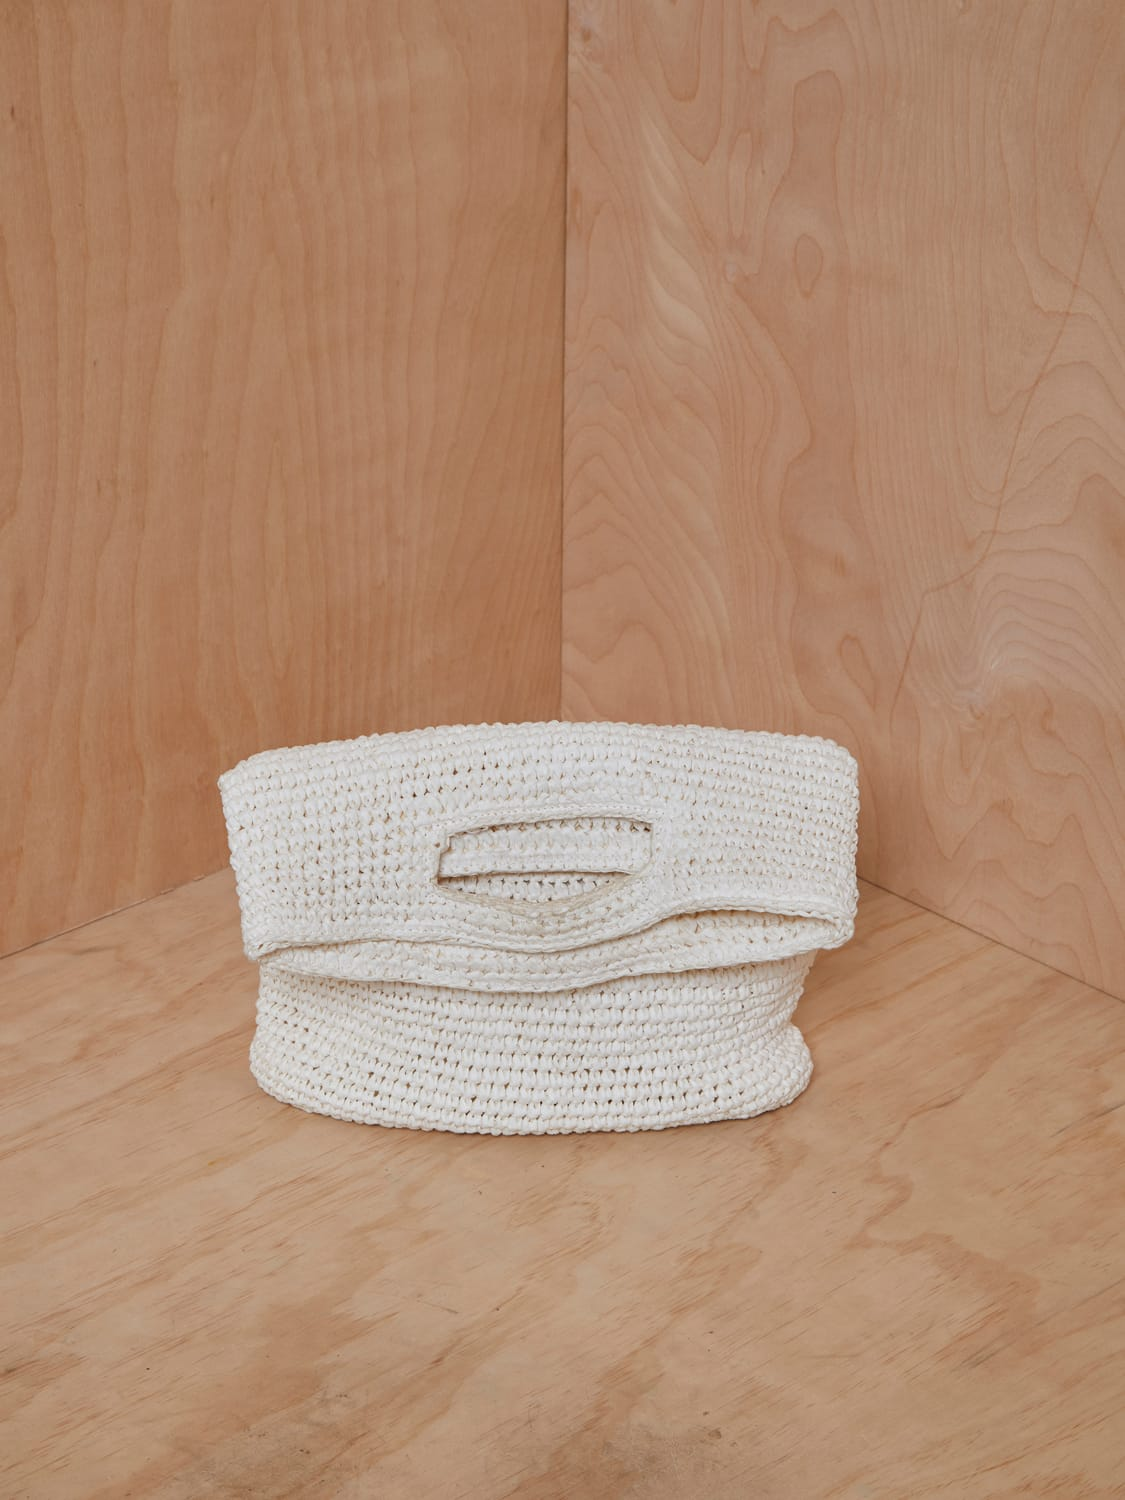 COS Foldover Raffia Bag in White